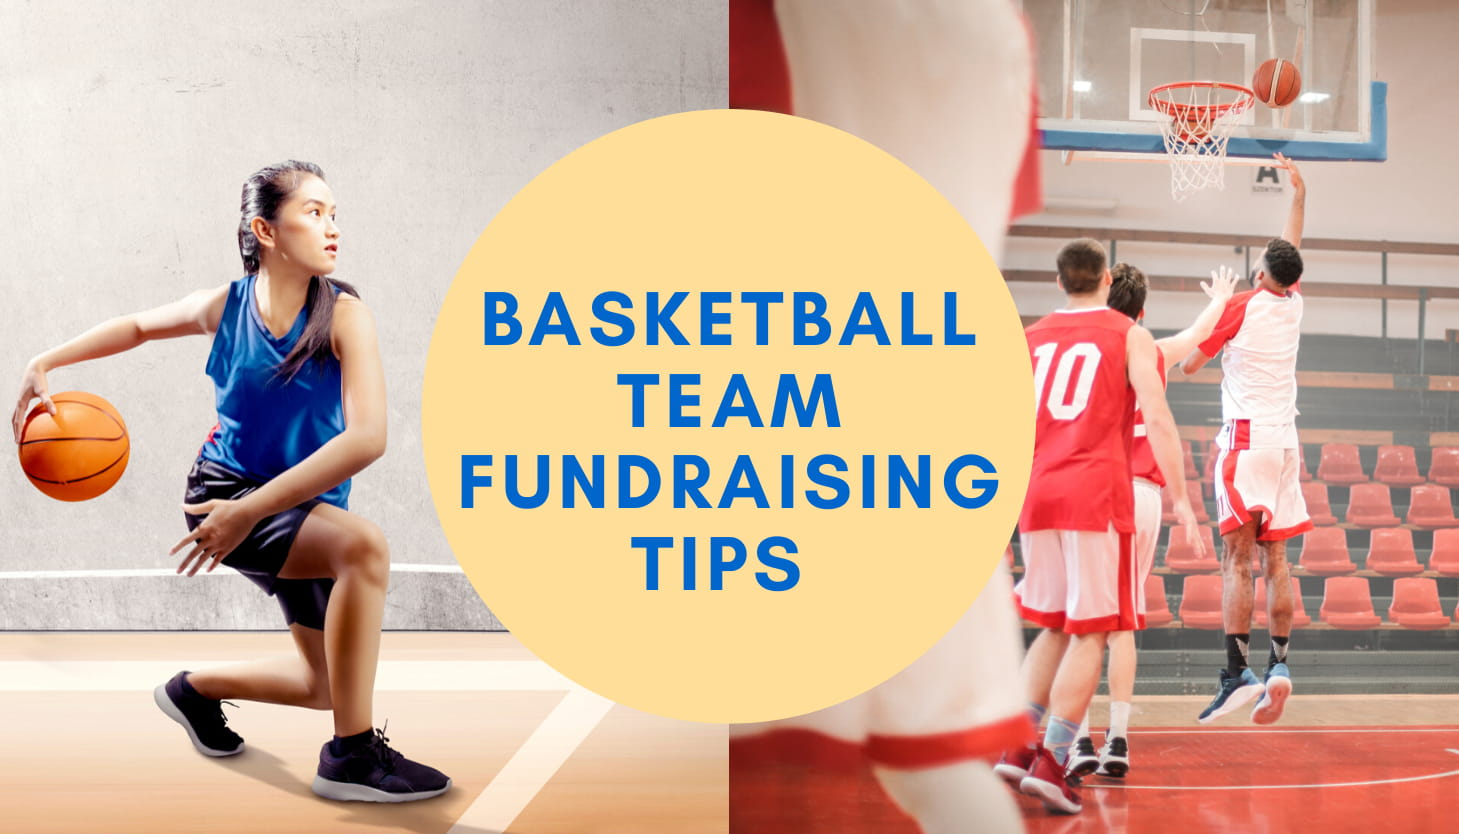 Fundraising Tips for Your Basketball Team